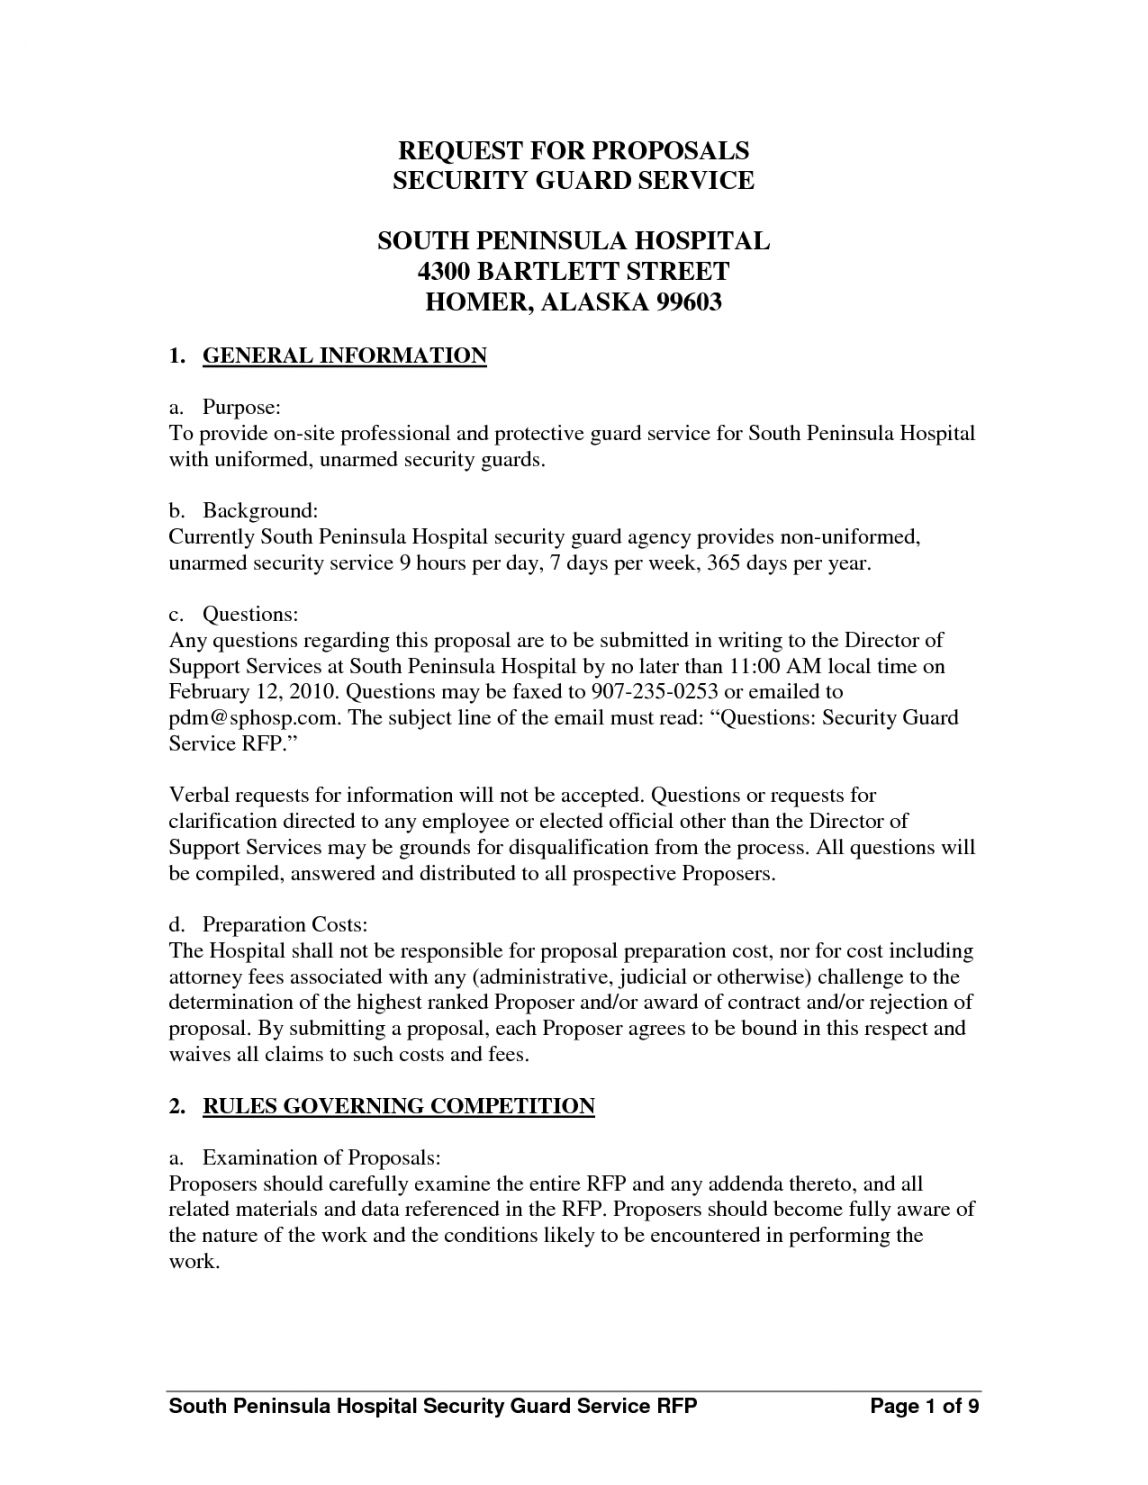 Security Guard Service Proposal Template Cover Letter Format Proposal Templates Security Guard Services